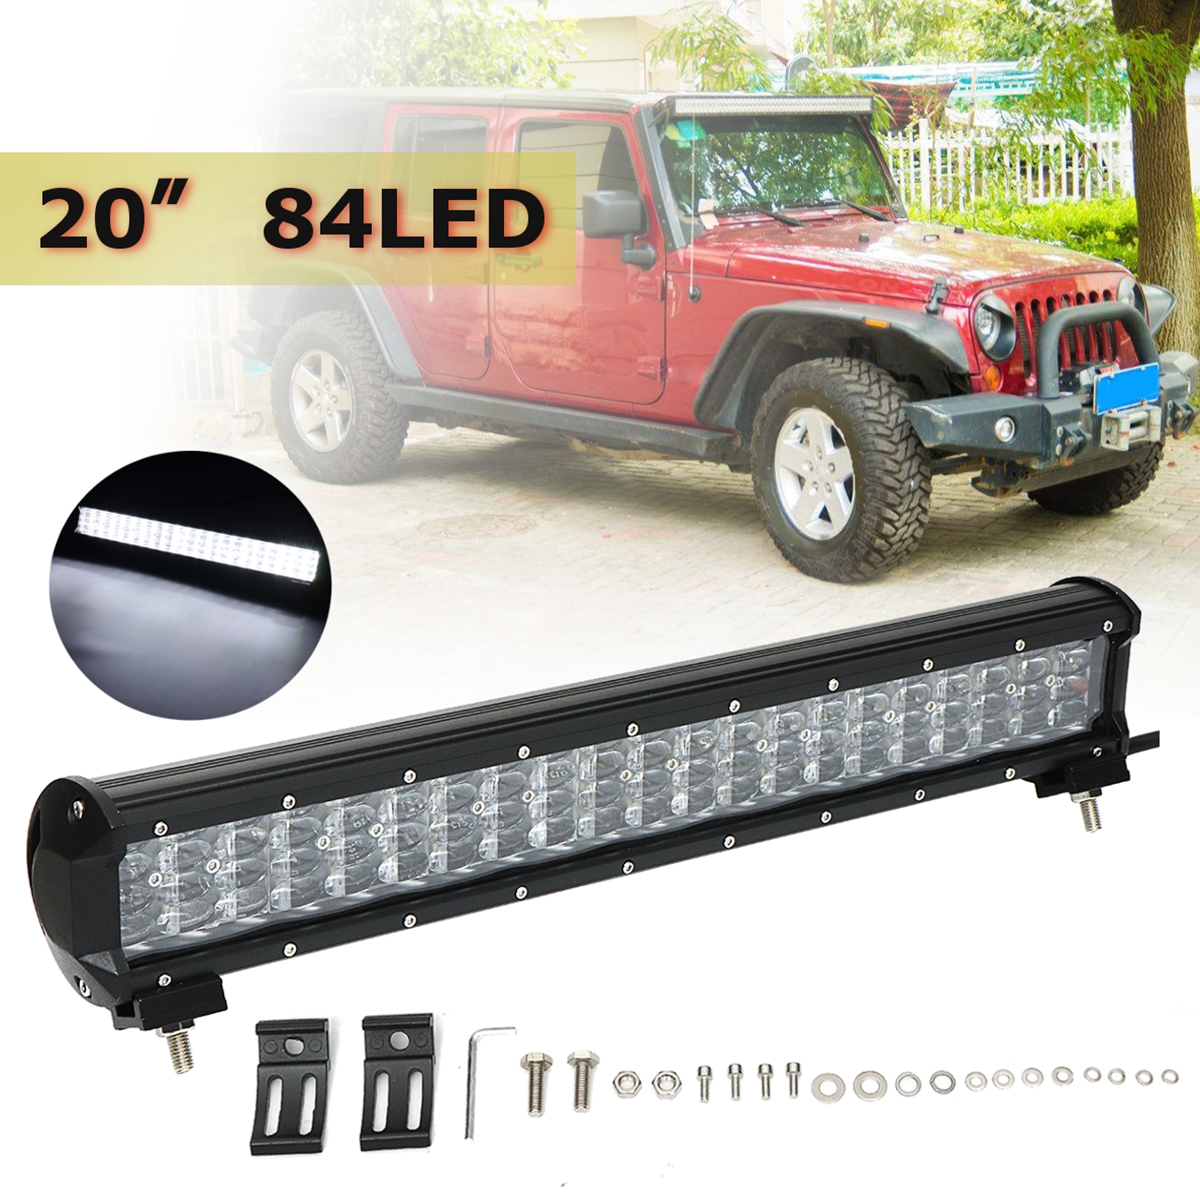 20Inch 252W 4-Row 84LED Work Light Bar Flood Pod Beam Lamps Bar for Offroad 4WD SUV Truck